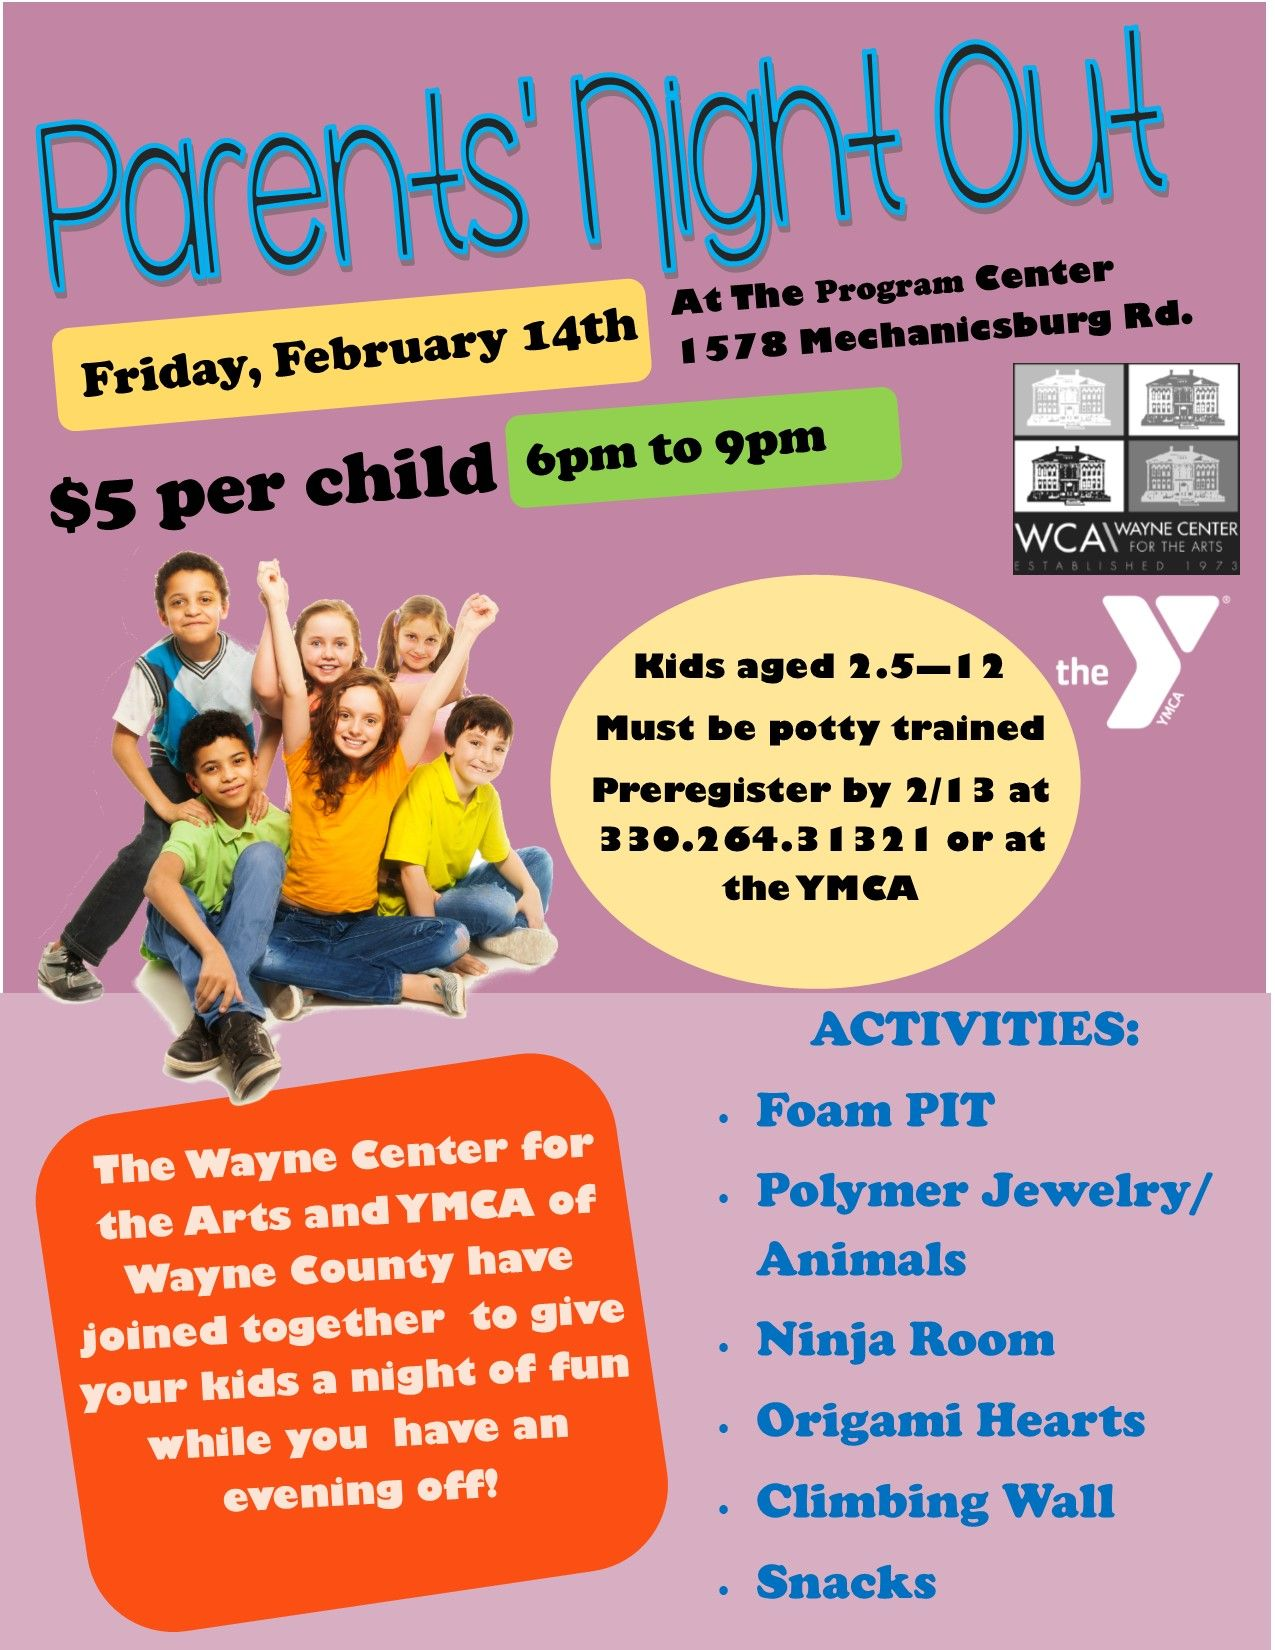 Parents' Night Out at the YMCA